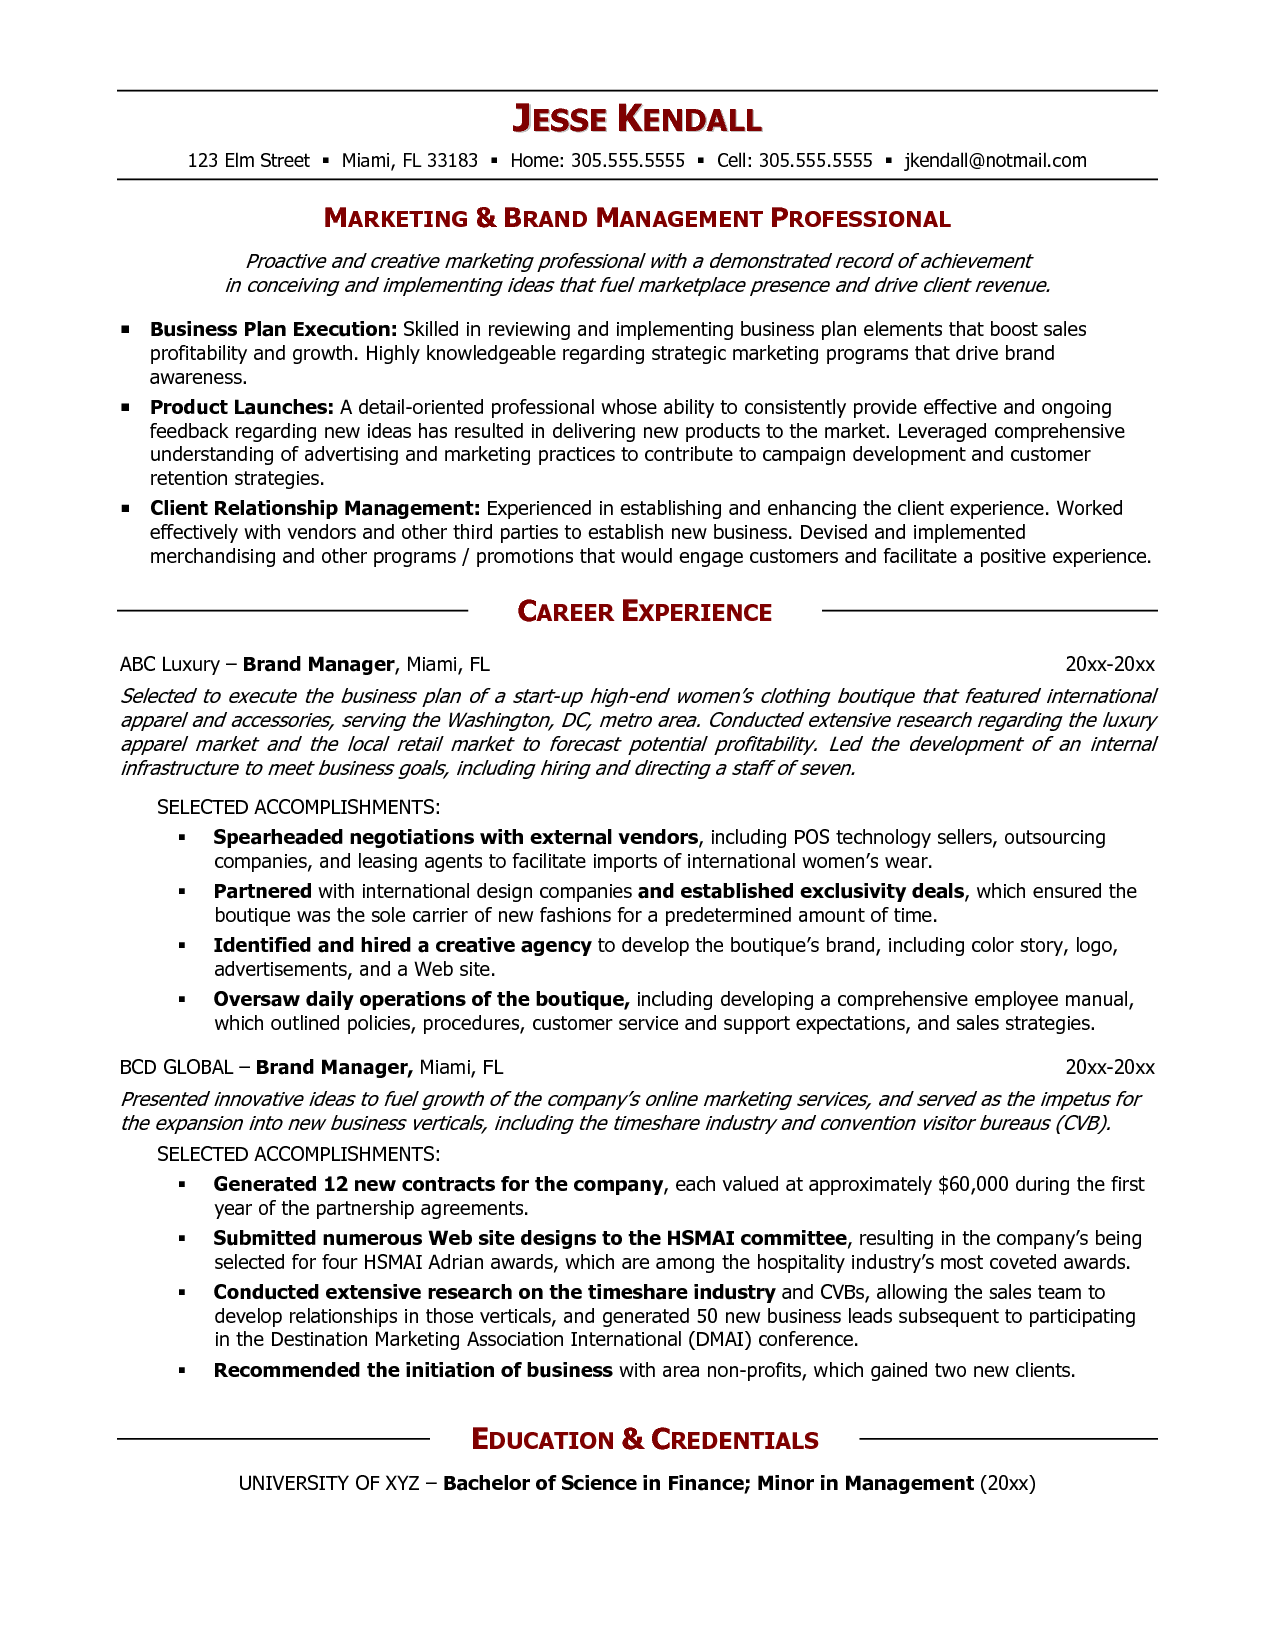 senior logistic management resume Brand Manager Resume